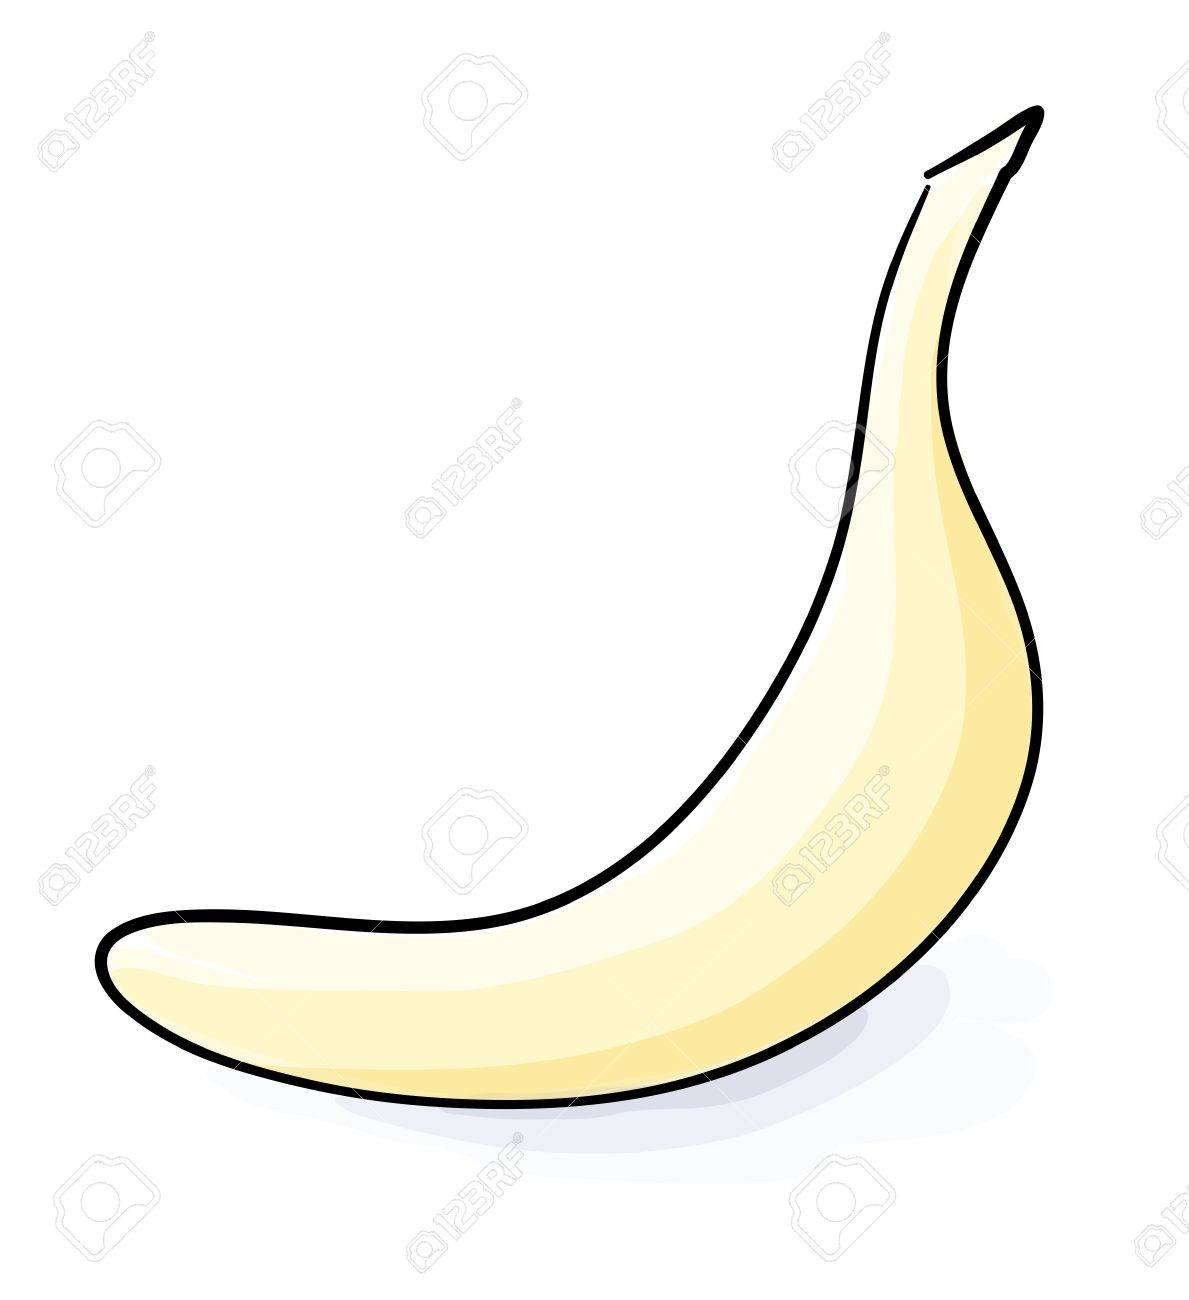 Eps 10 vector banana sketch in light colors Stock Vector - 14811378